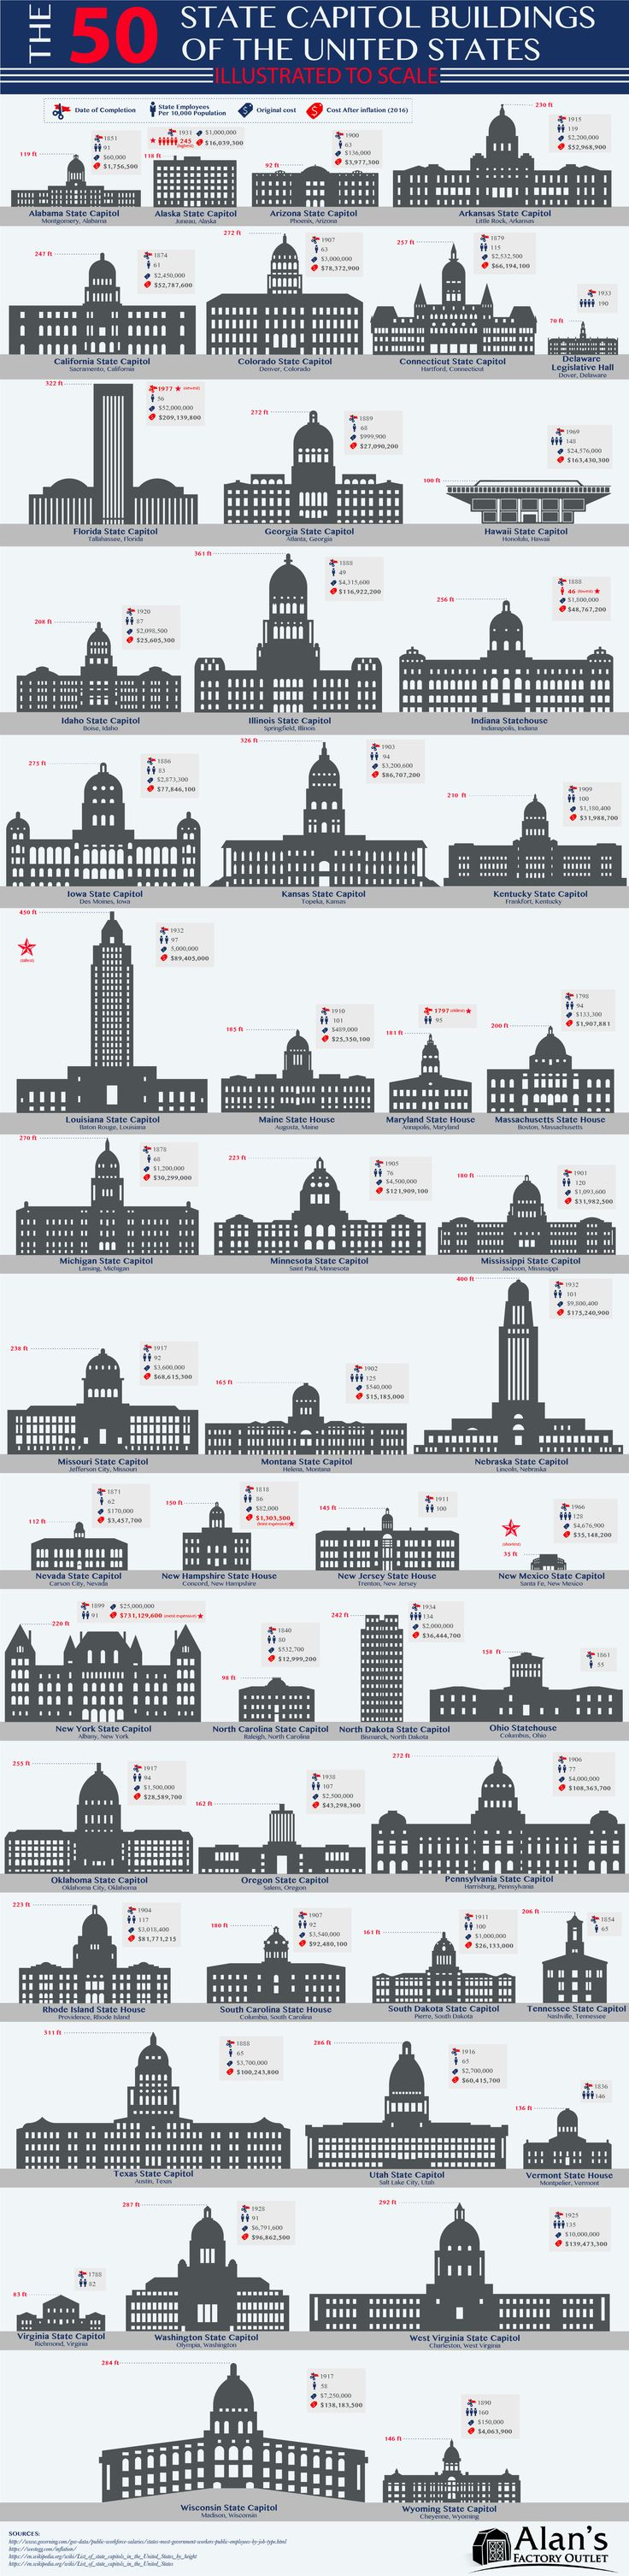 The 50 State Capitol Buildings of the United States Illustrated to Scale #infographic http://bit.ly/2mvUxoF